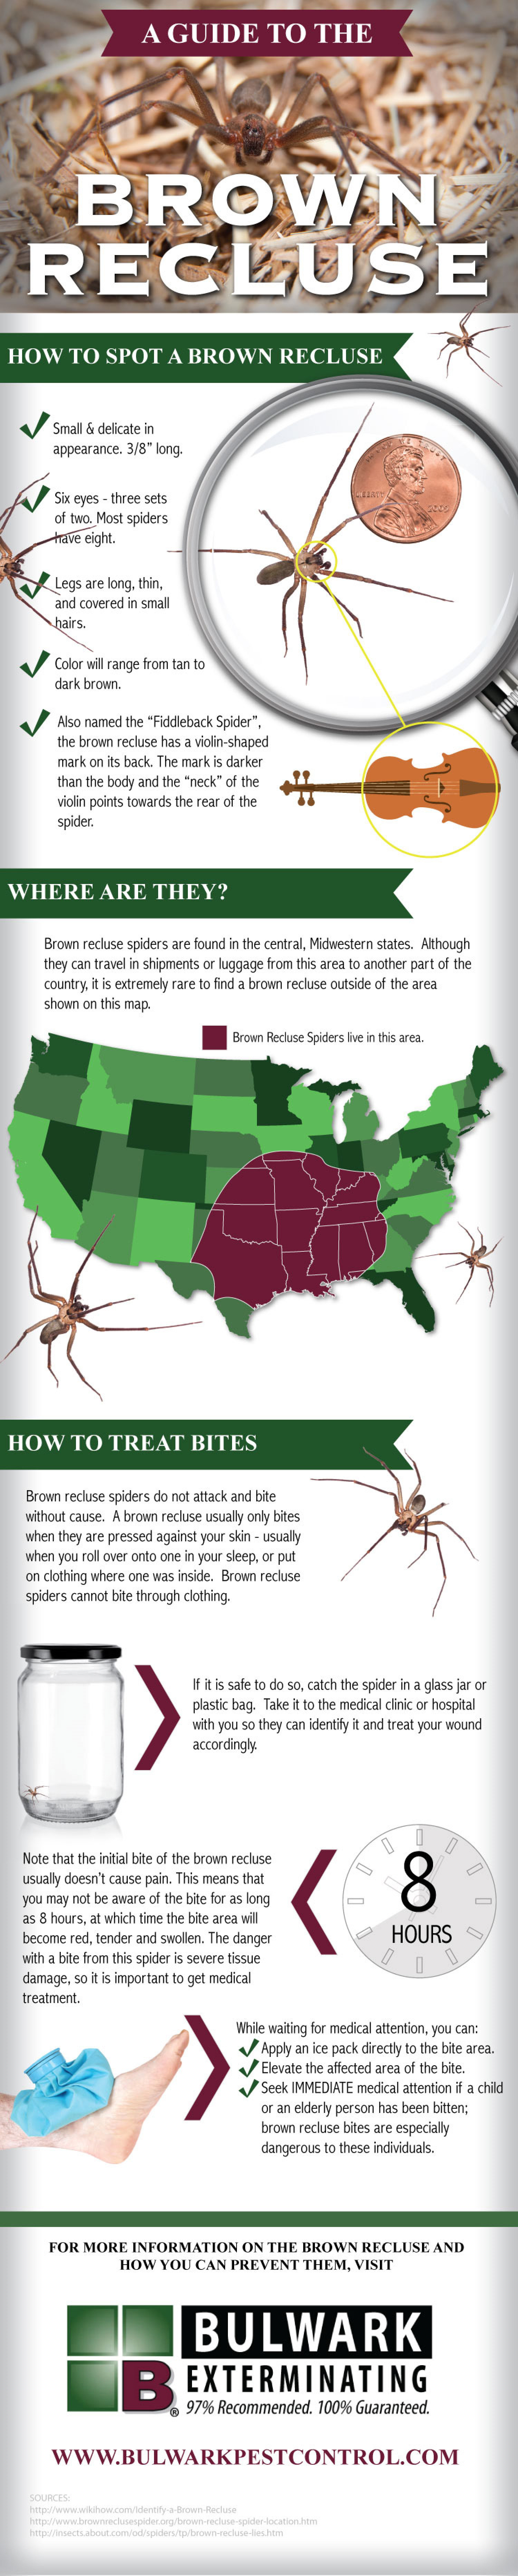 A Guide to the Brown Recluse Guide Infographic